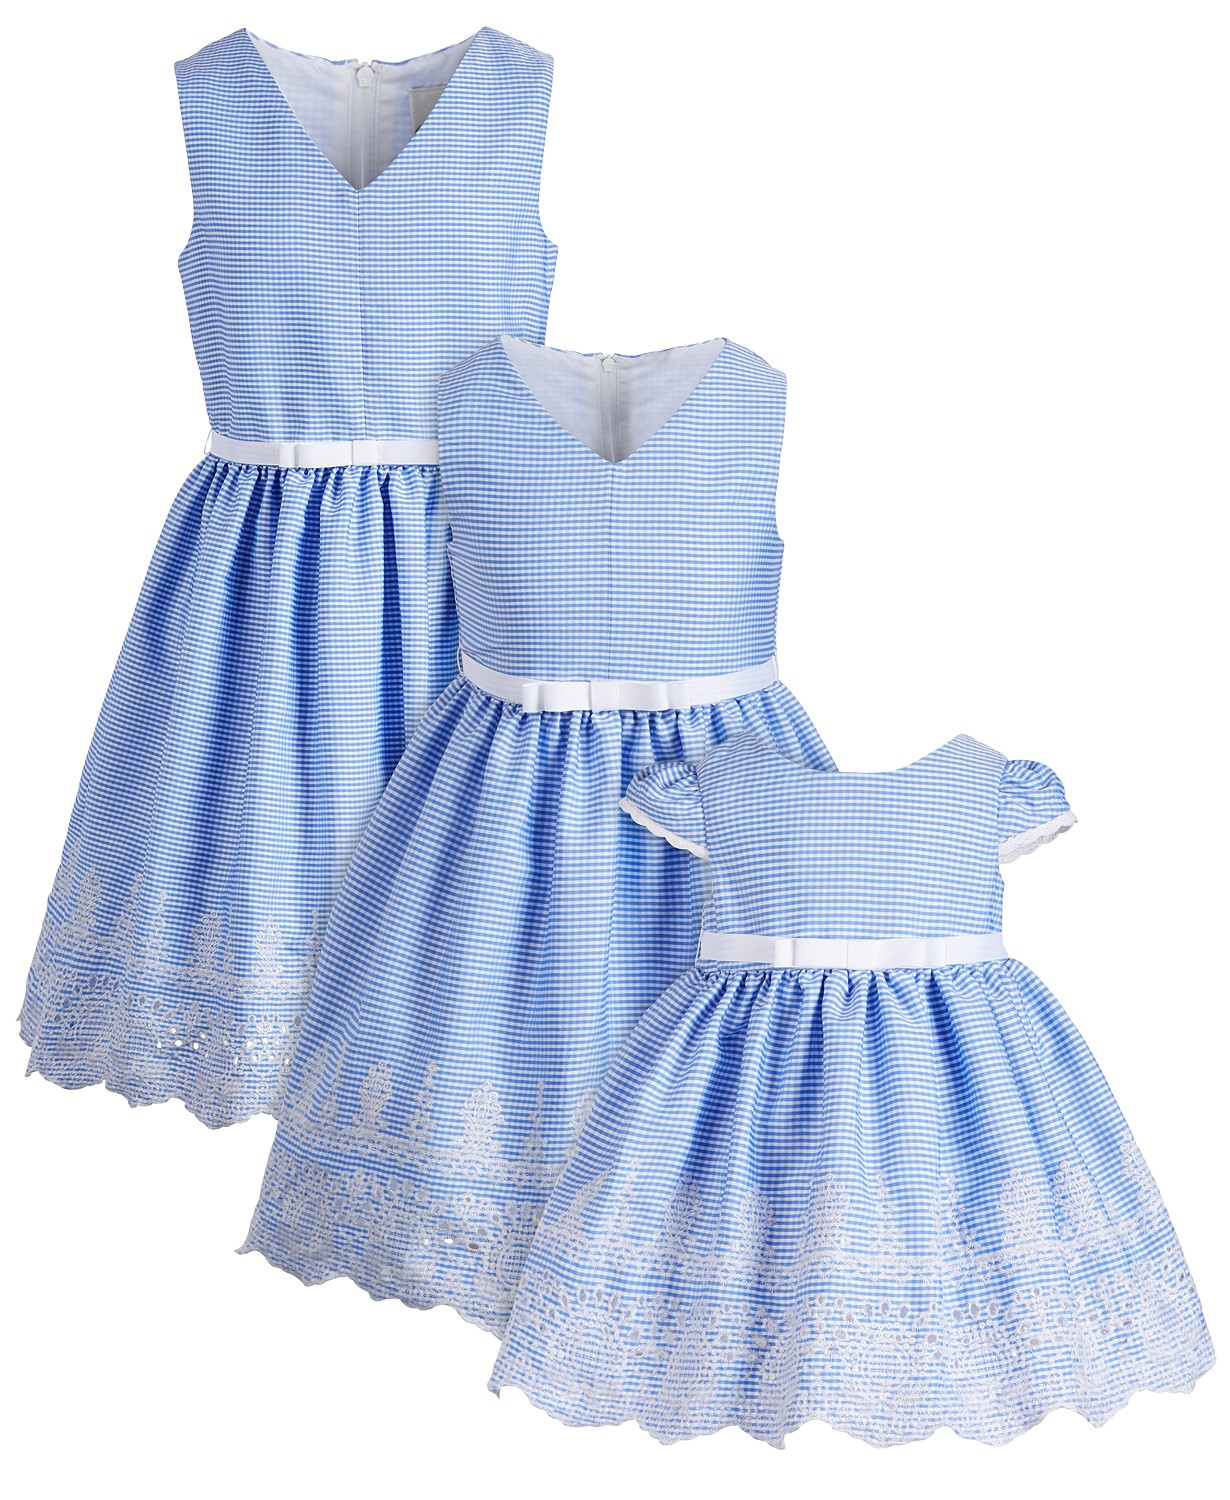 Matching blue gingham sisters Easter dresses.